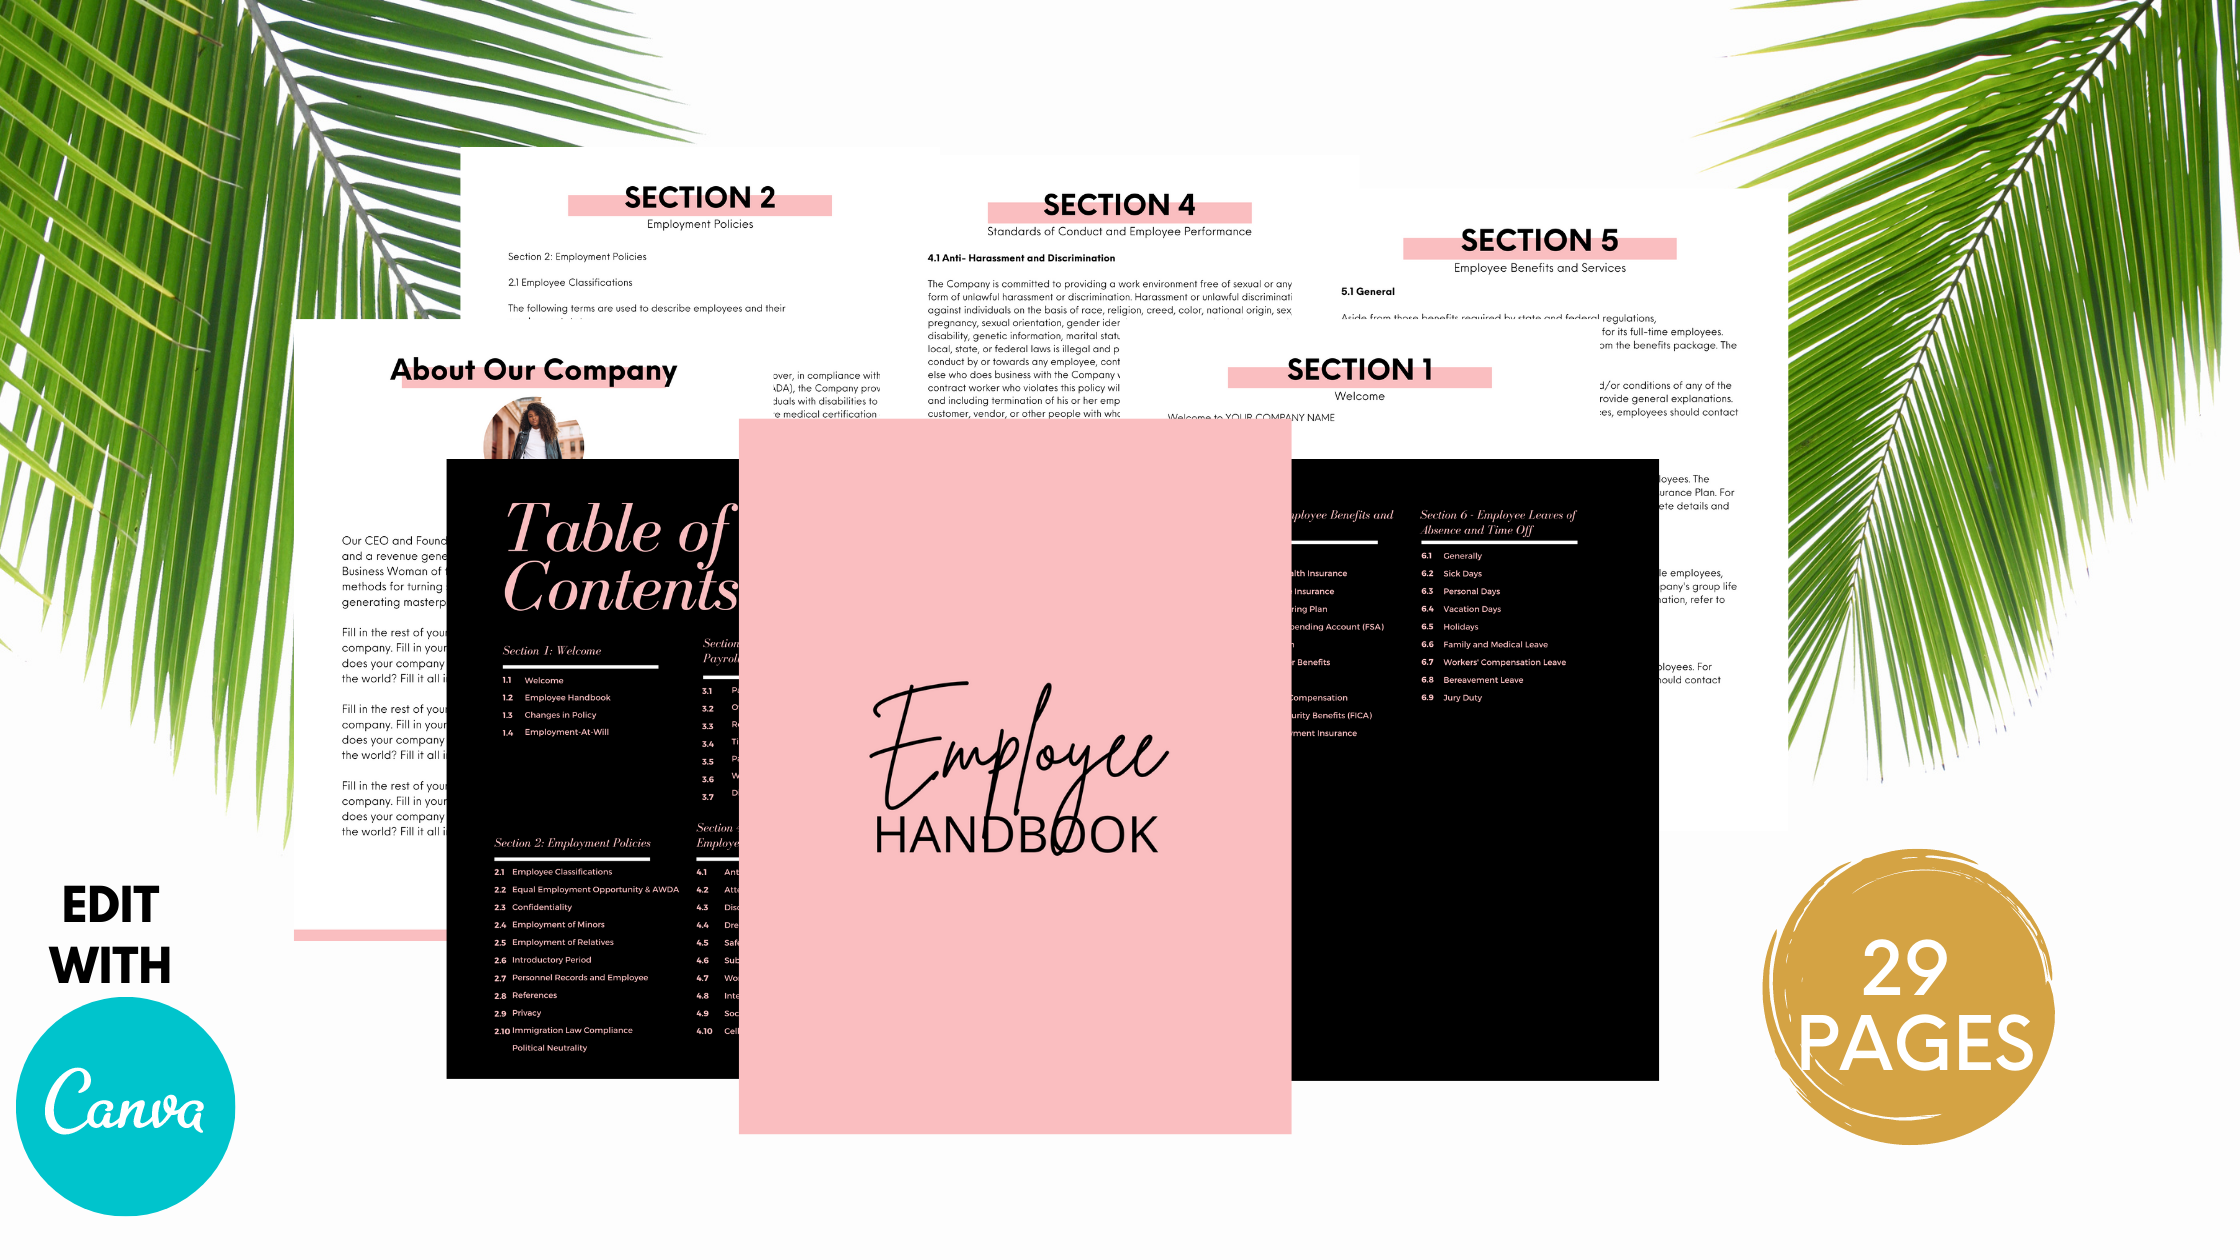 Employee Handbook// Company Employee Handbook// Editable Handbook// Employee Guide// Policies and Procedures// Edit in Canva// Printable